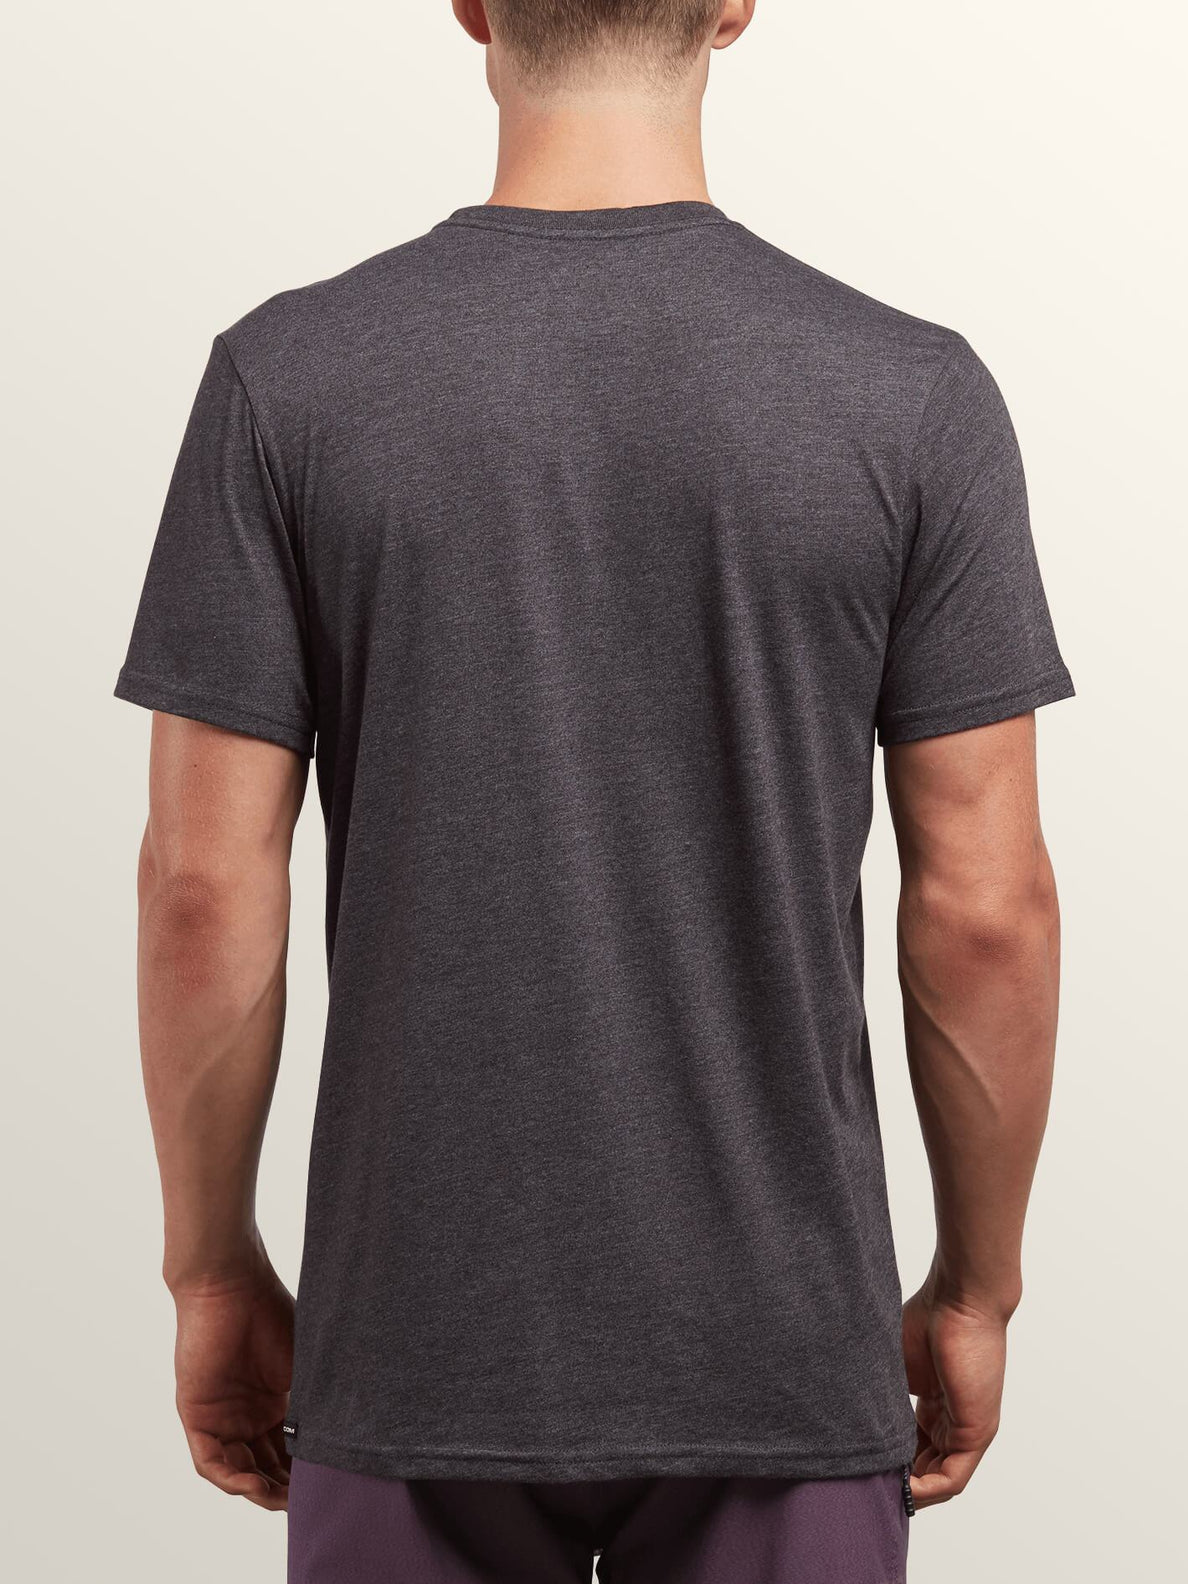 Bold Short Sleeve Tee In Heather Black, Back View